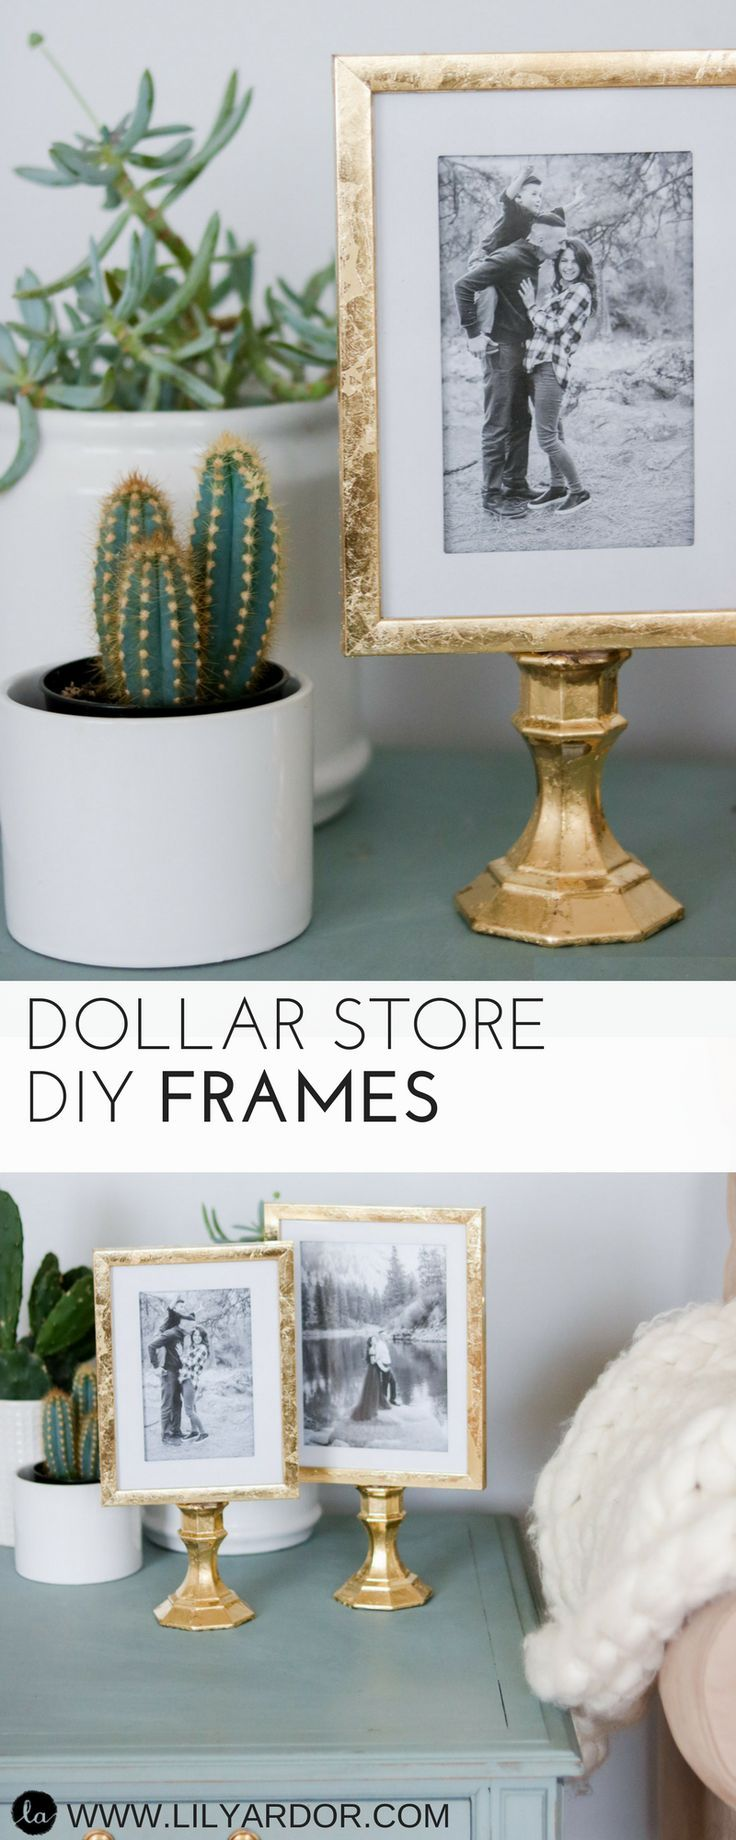 5 Dollar Store Hacks for Home Decor and Kitchen Organization ...